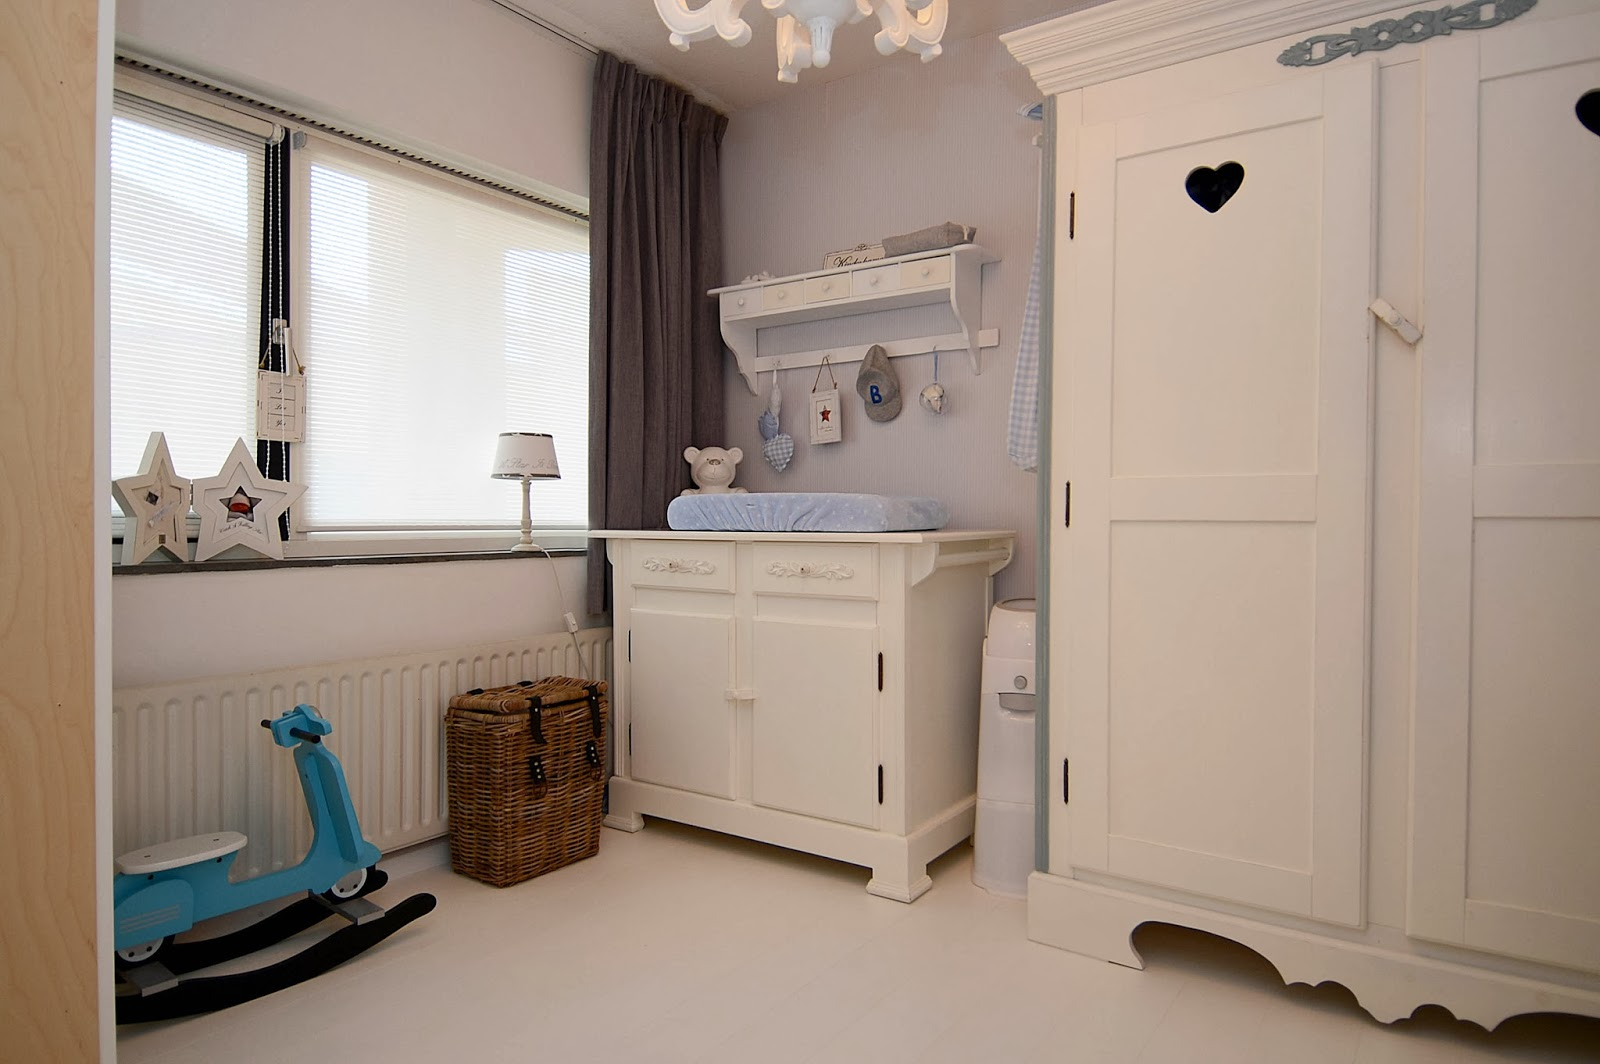 Slaapkamer Delen Met Baby : Old, new, pink and blue